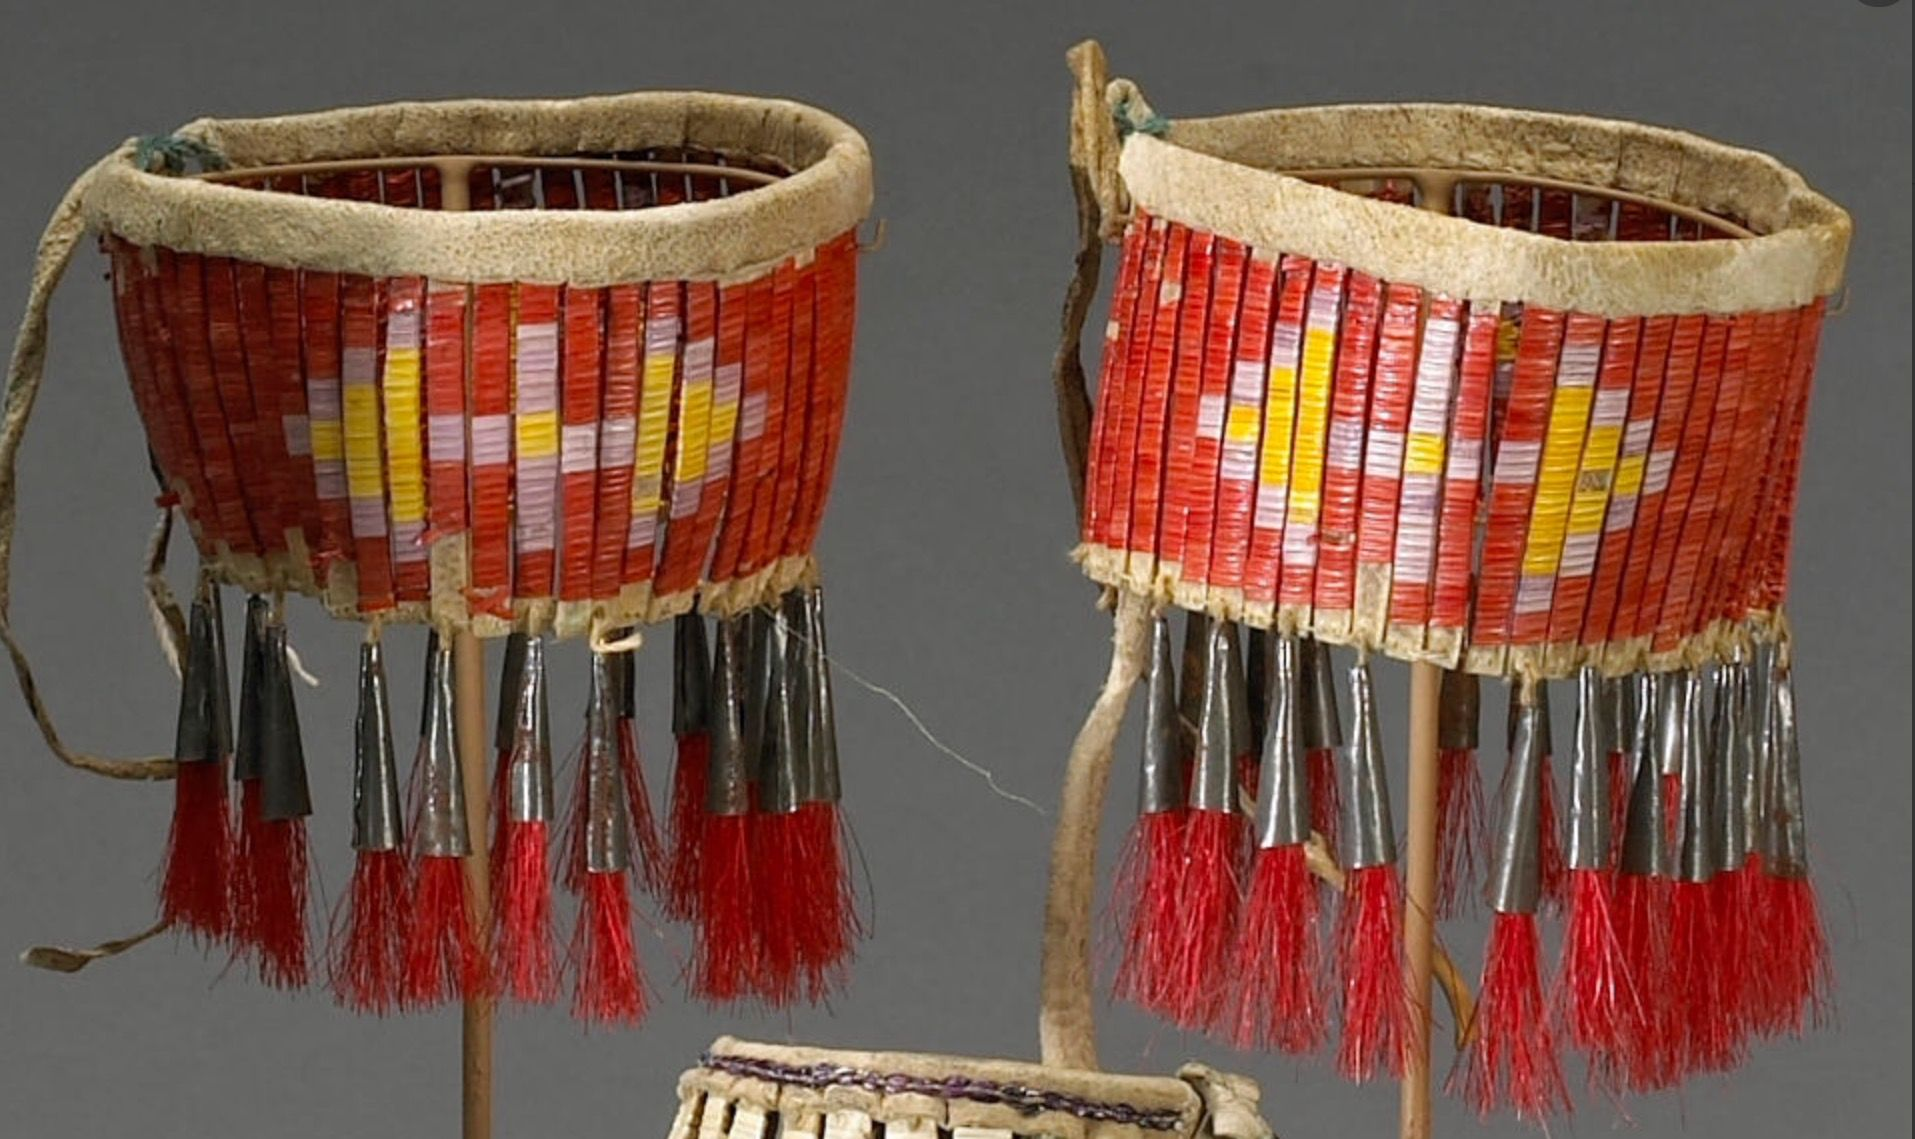 A PAIR OF SIOUX QUILLED ARMBANDS.  Property from a Southwest collector.  Consisting of quill-wrapped rawhide slats fastened at top with a leather sleeve, worked in cross and tipi motifs, trailing tin cones and dyed horsehair suspensions. length 5in. Bonham's NATIVE AMERICAN ART. 1 июня 2009 года. Сан Франциско.